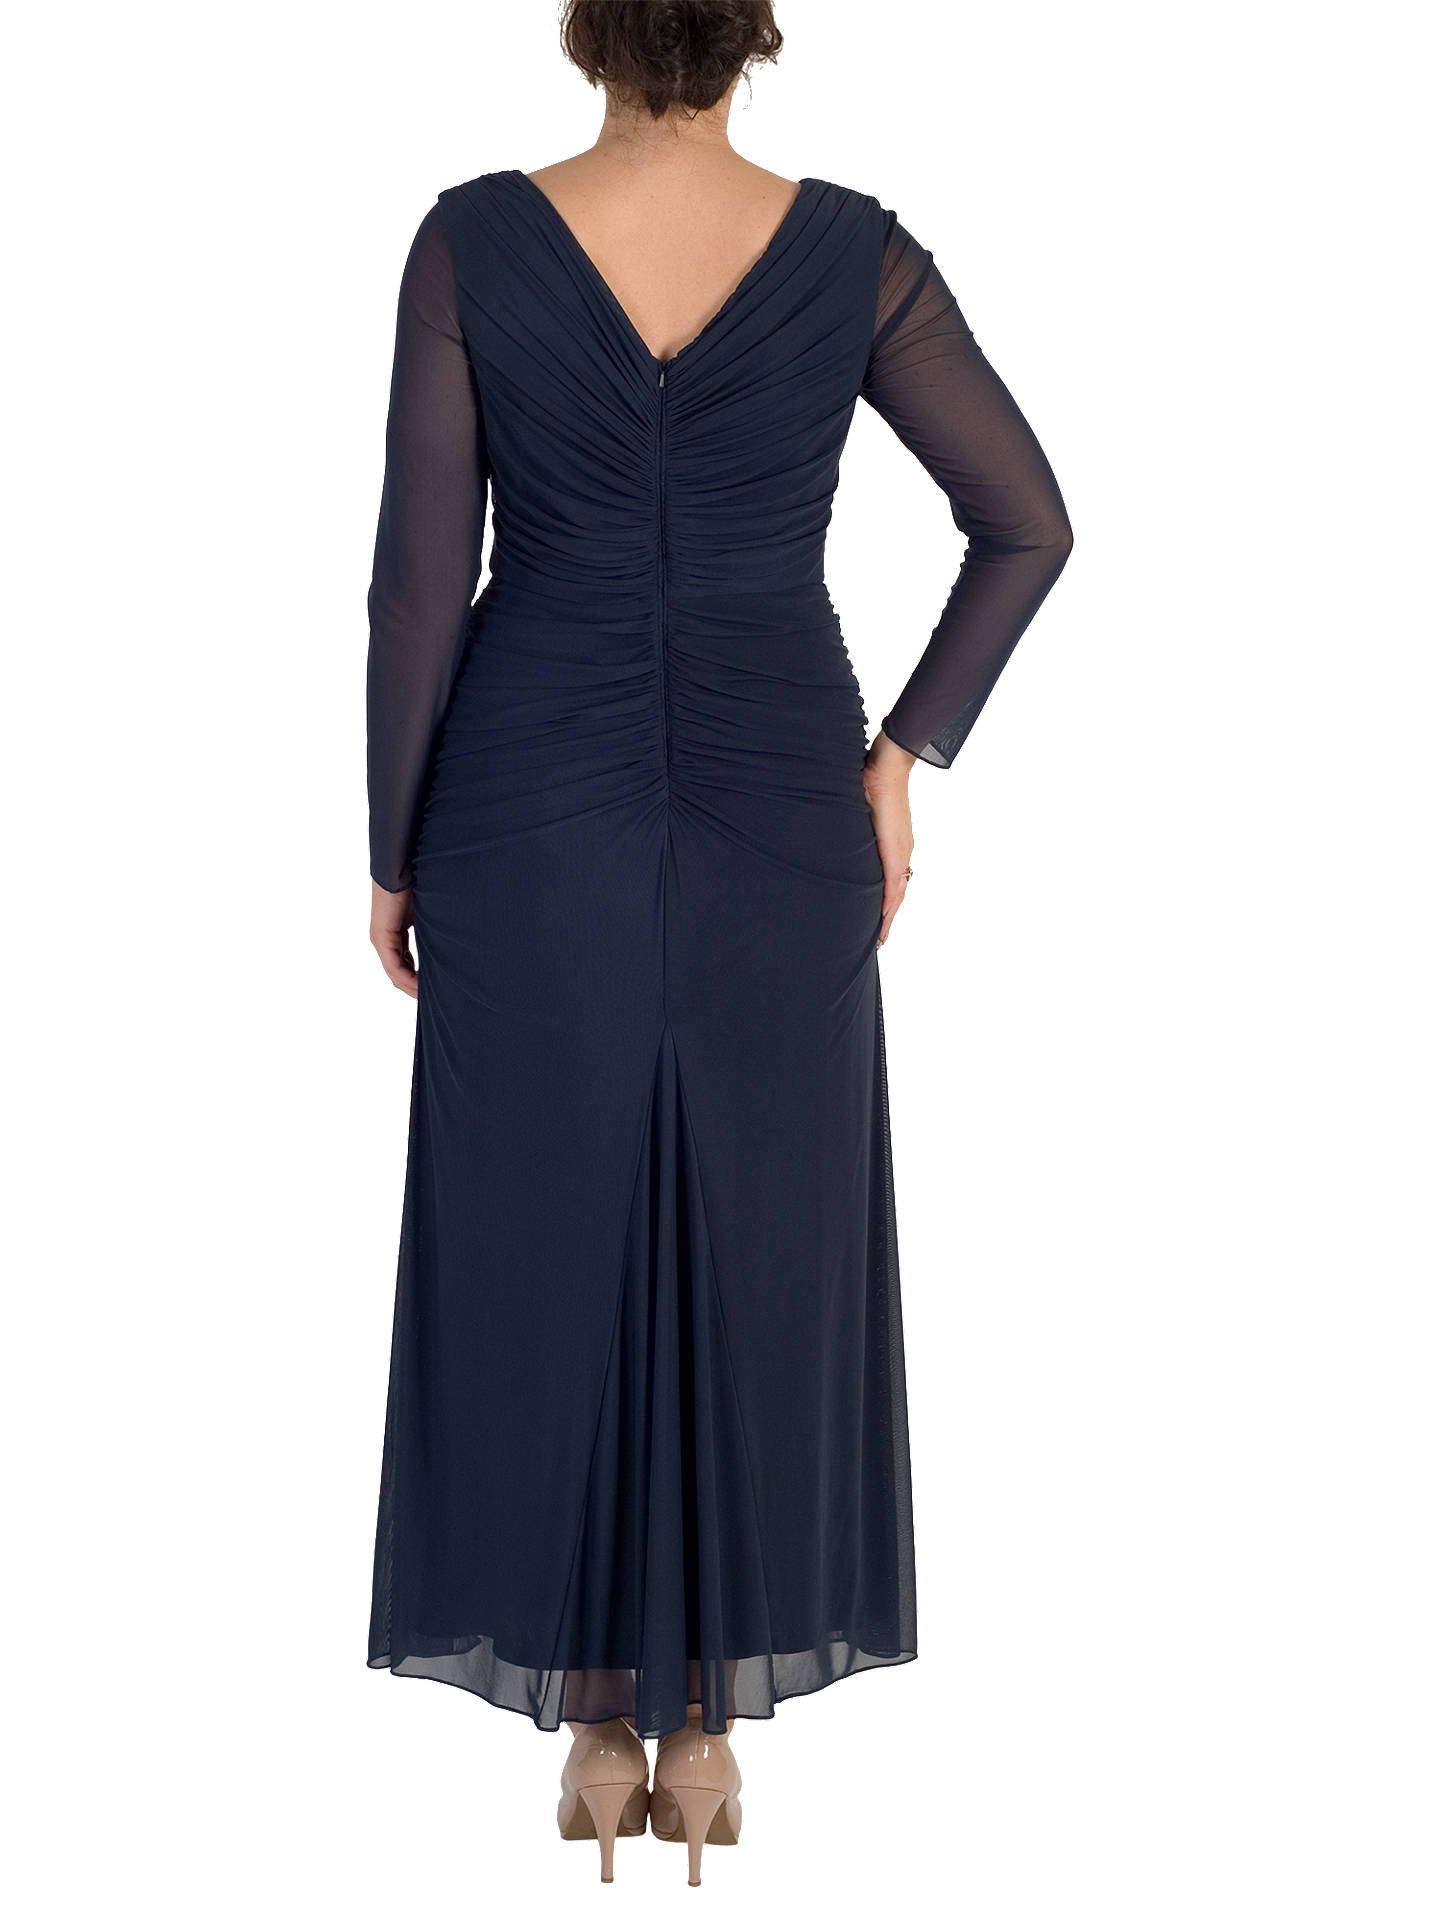 BuyChesca Trim Mesh Dress, Navy, 12 Online at johnlewis.com